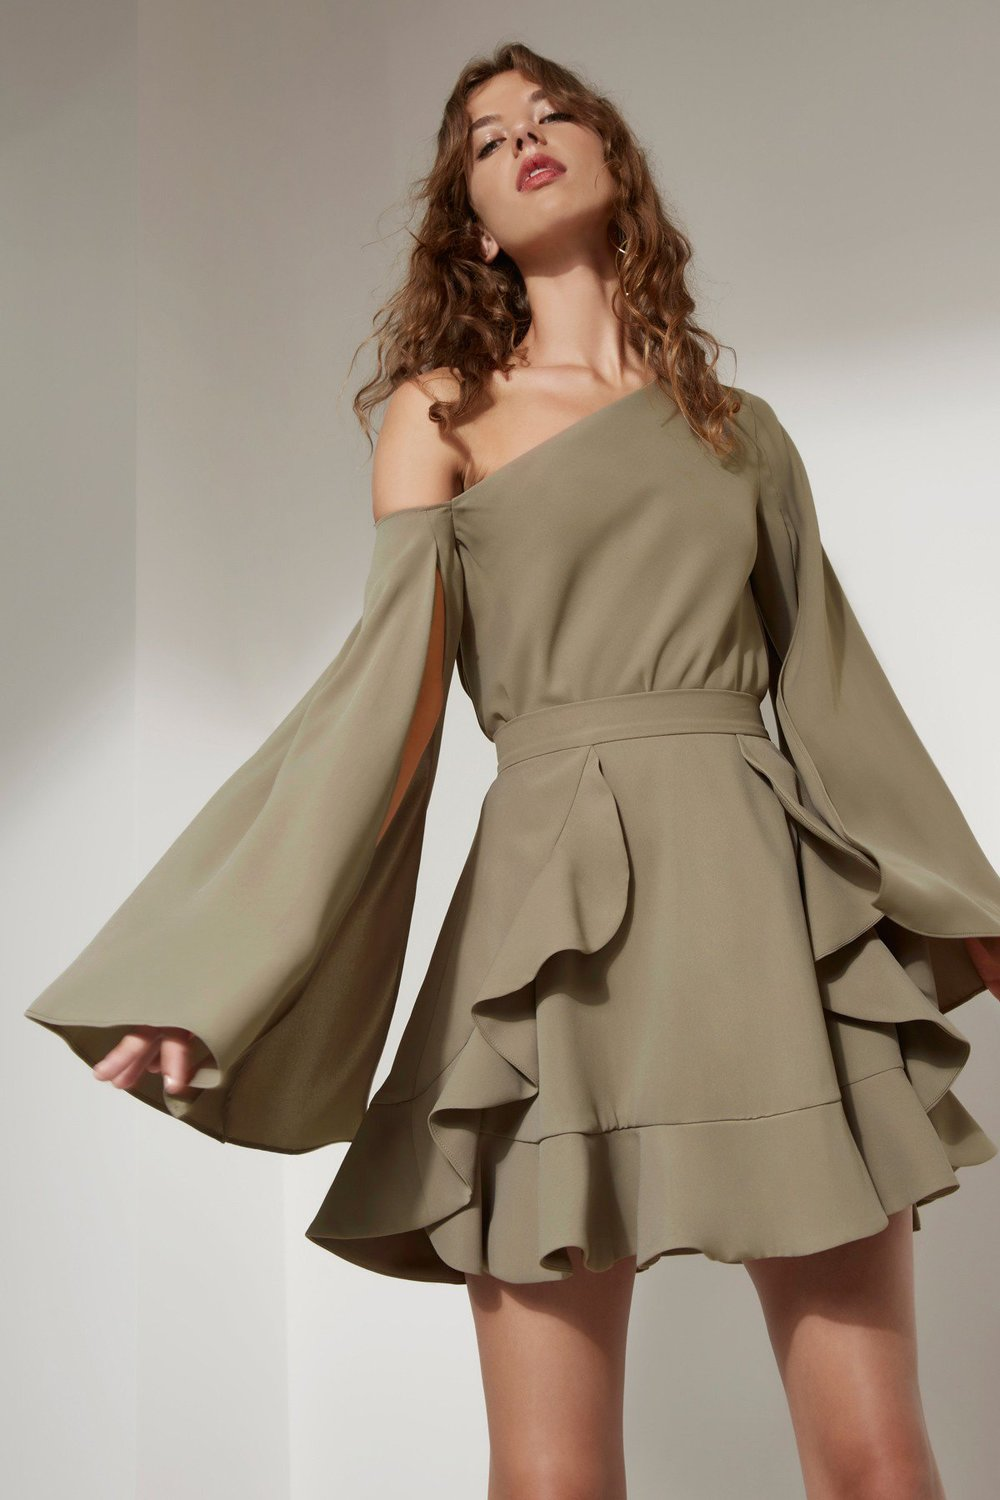 1707_cc_ultralight_skirt_khaki_g_3271-edit-70.jpg